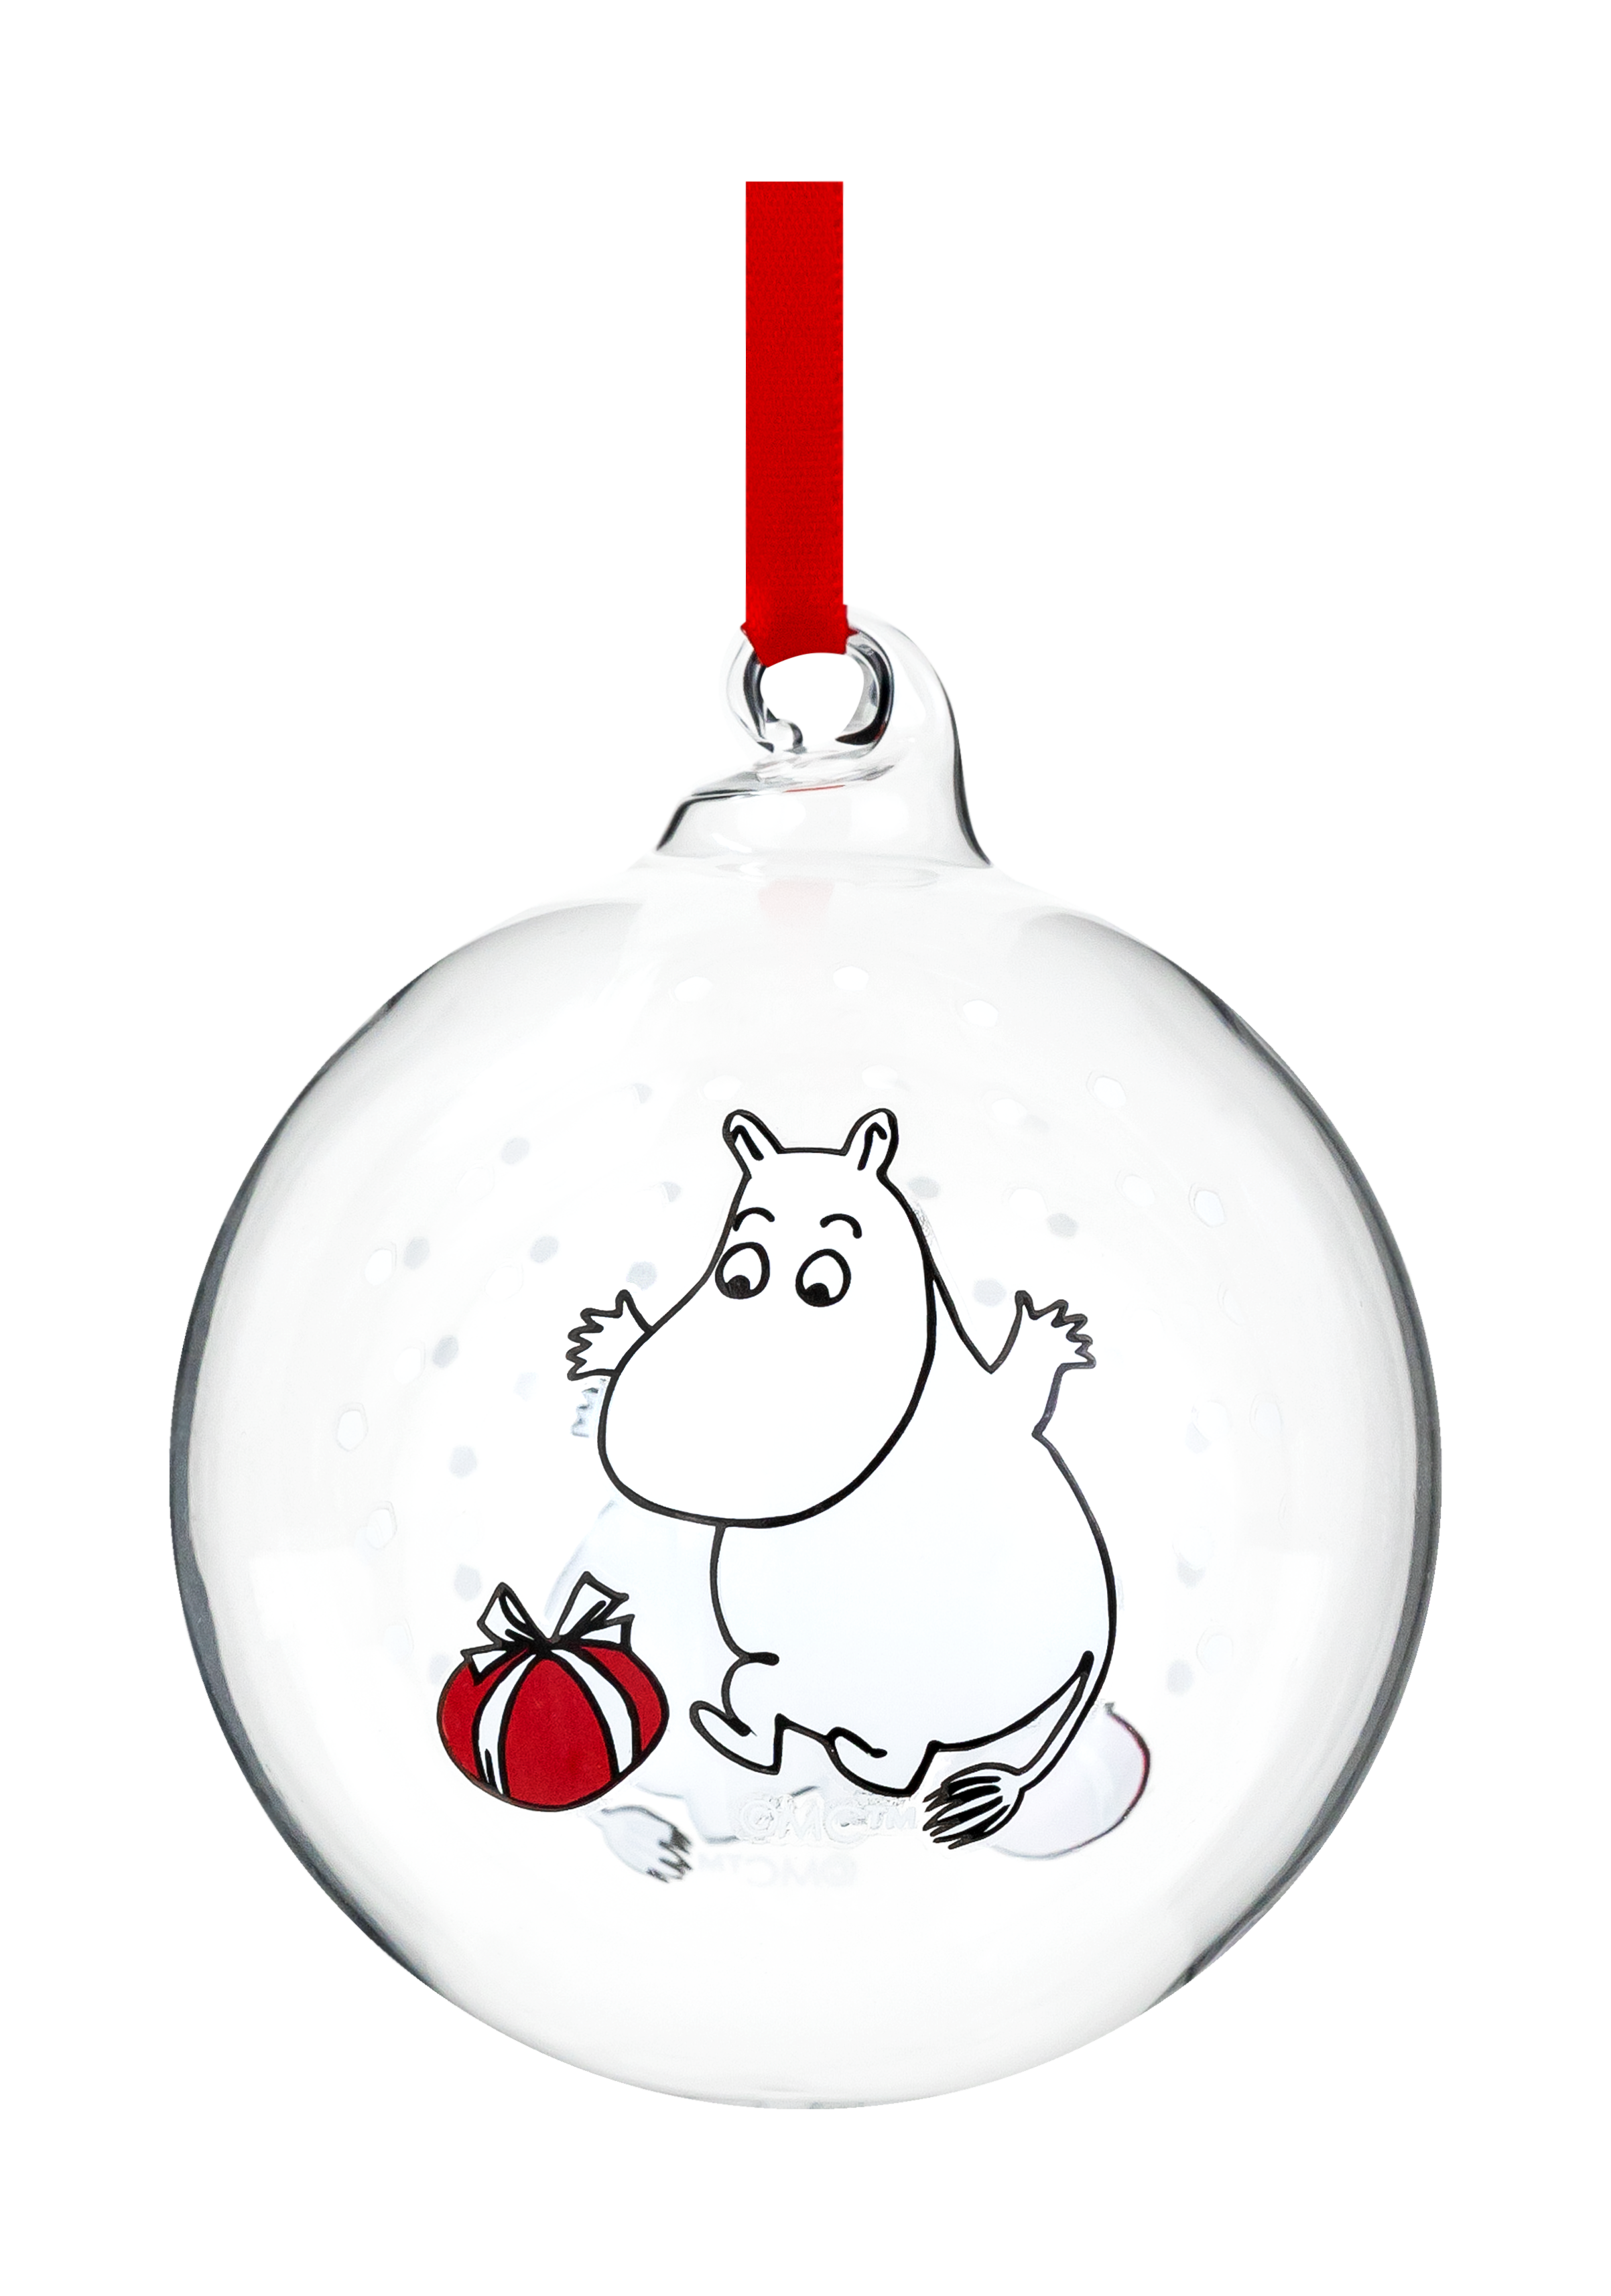 Moomin by Muurla - Moomin decoration ball 7cm